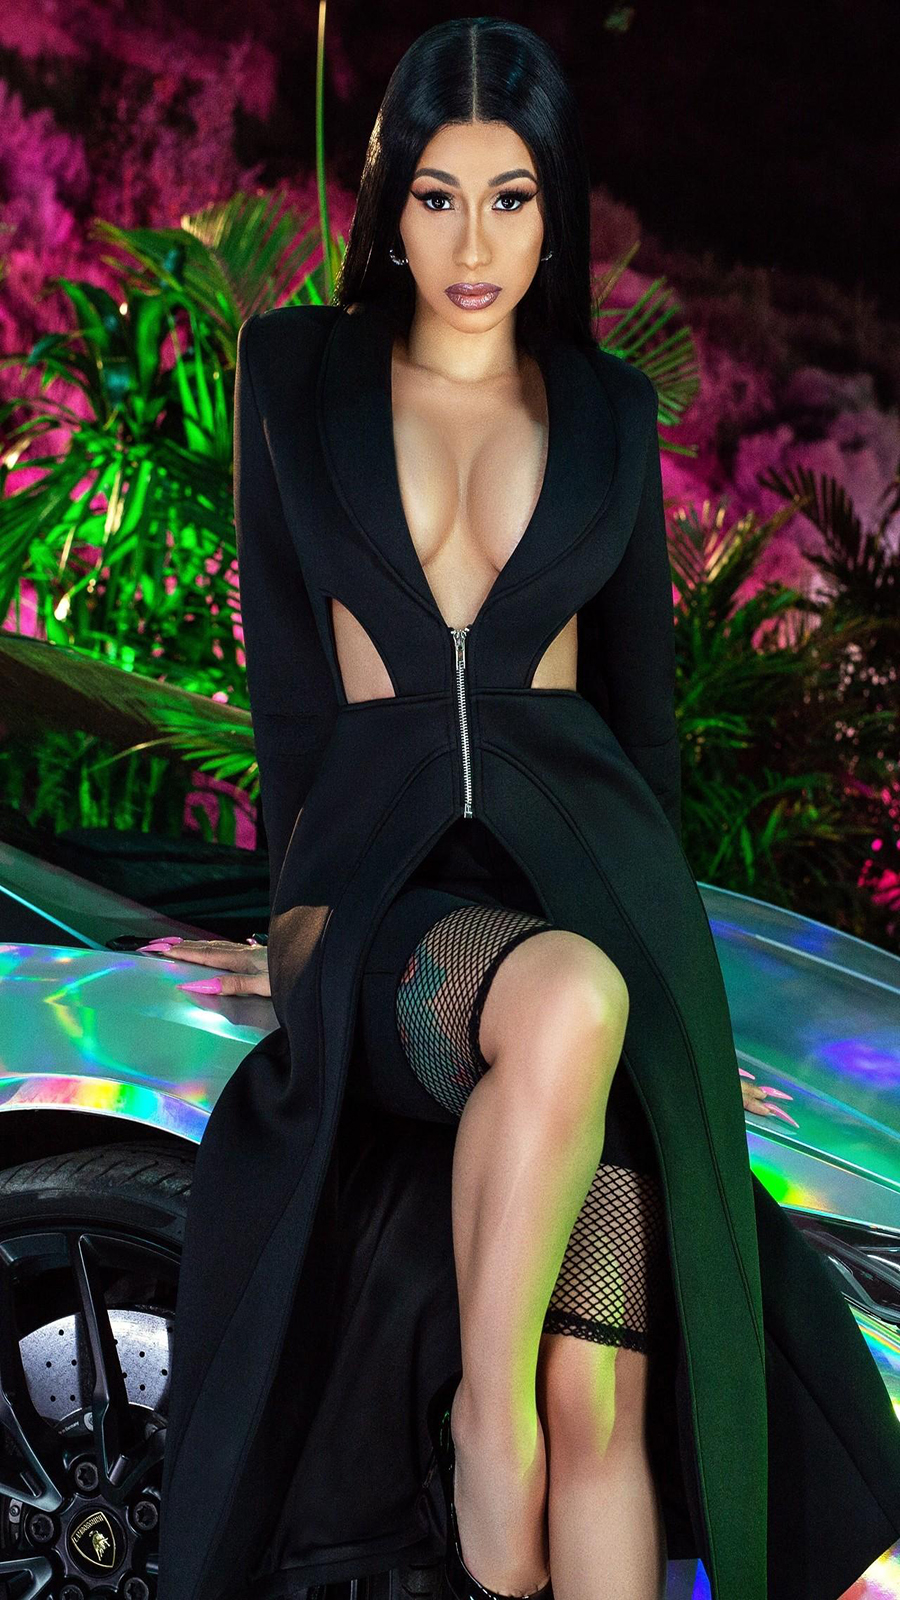 Sexy Cardi B Wallpapers Free Download